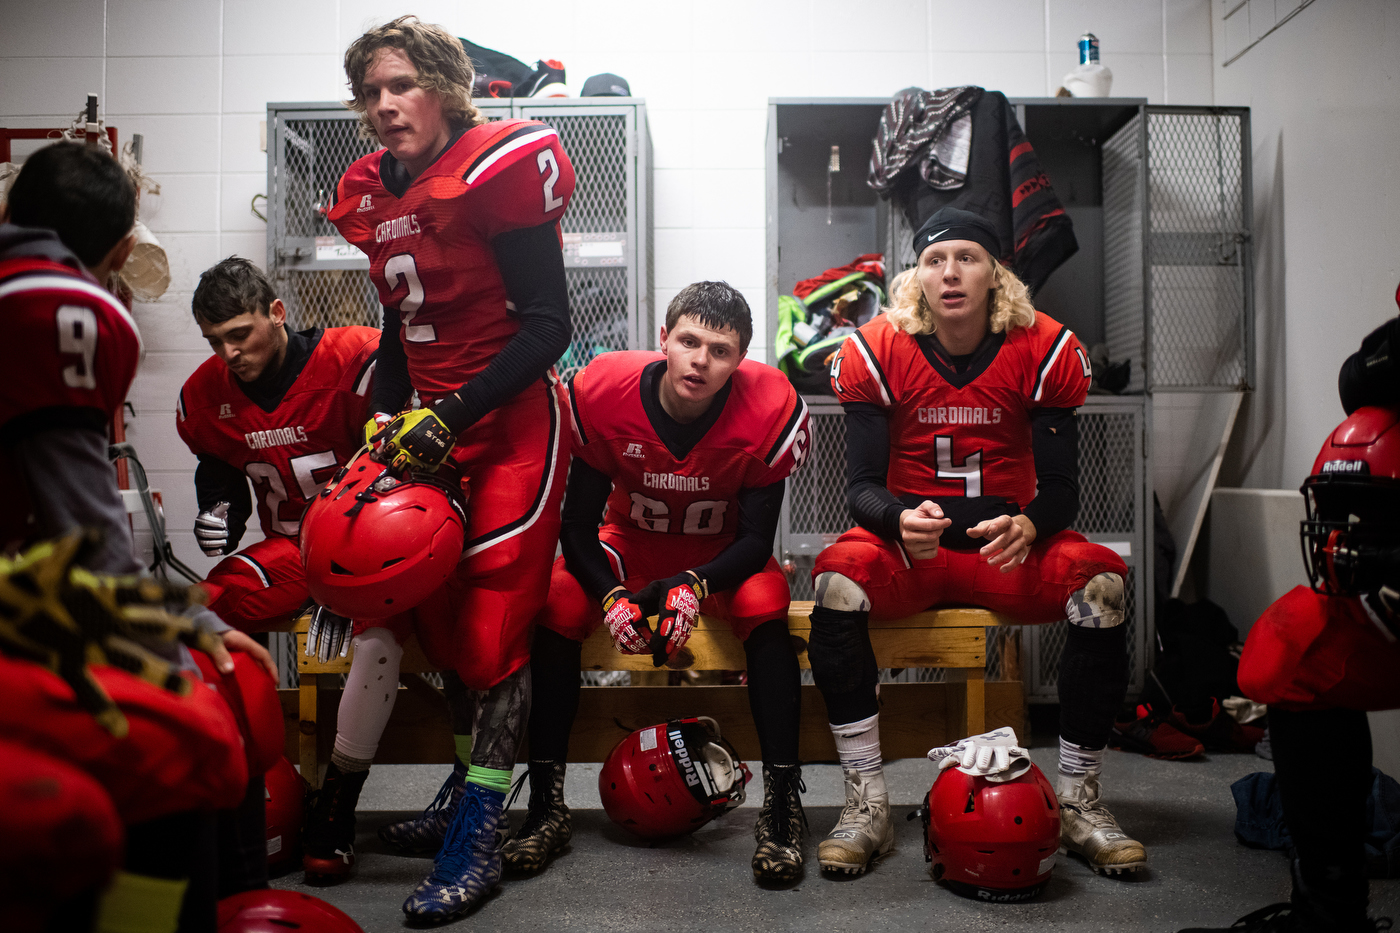 Players take a break in a high school locker room during the Bison Cardinals' game versus northern rivals, the Lemmon-McIntosh Cowboys in Bison, SD.